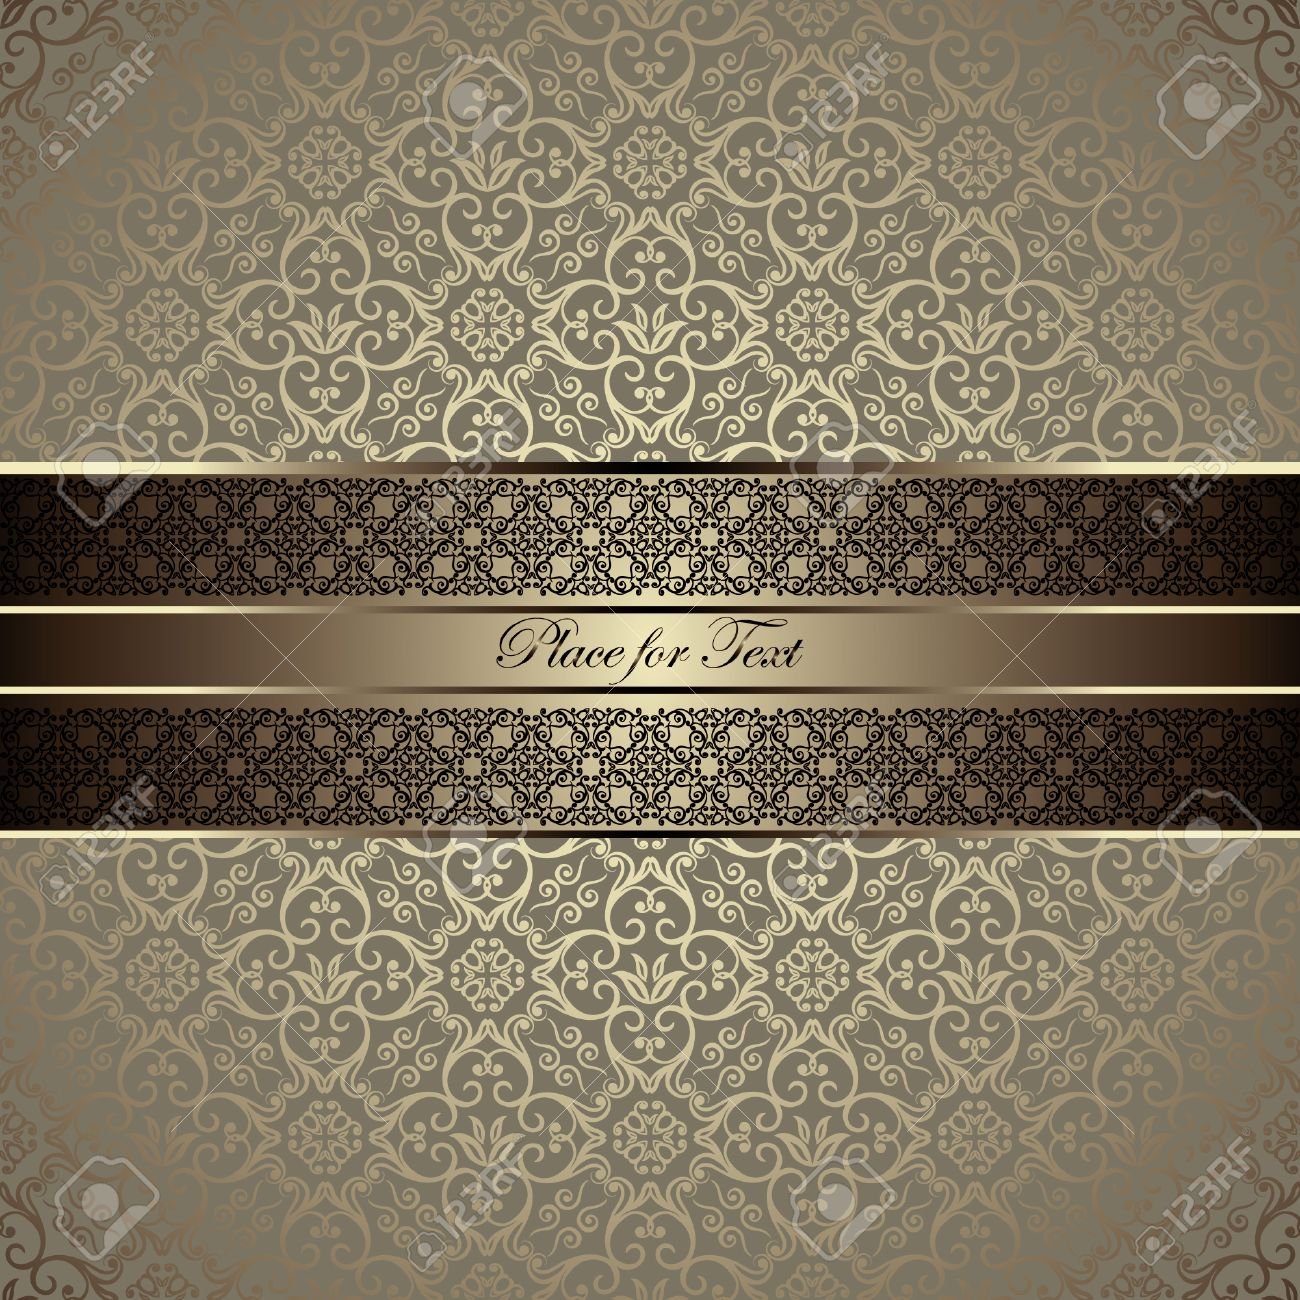 Vintage card with a border on seamless damask wallpaper - 30995381